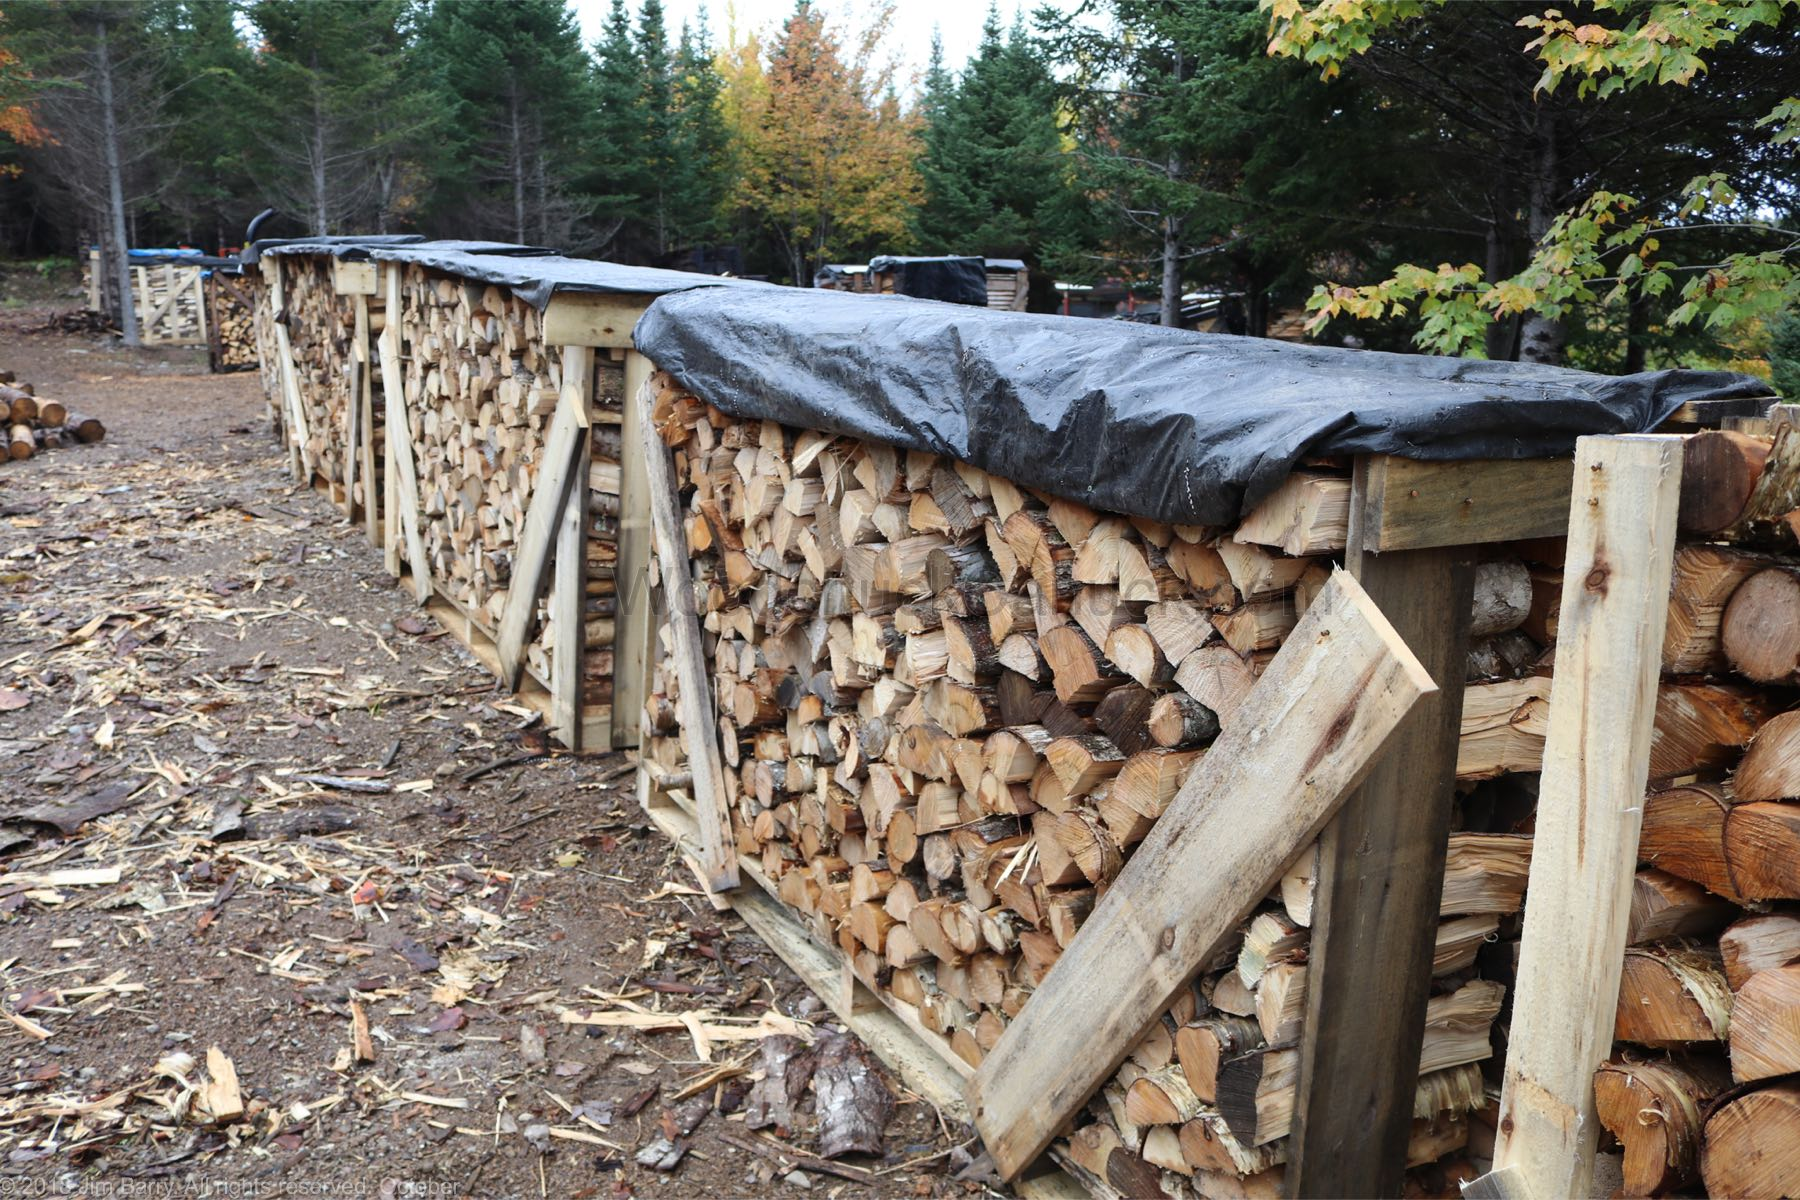 Crates of firewood for sale.